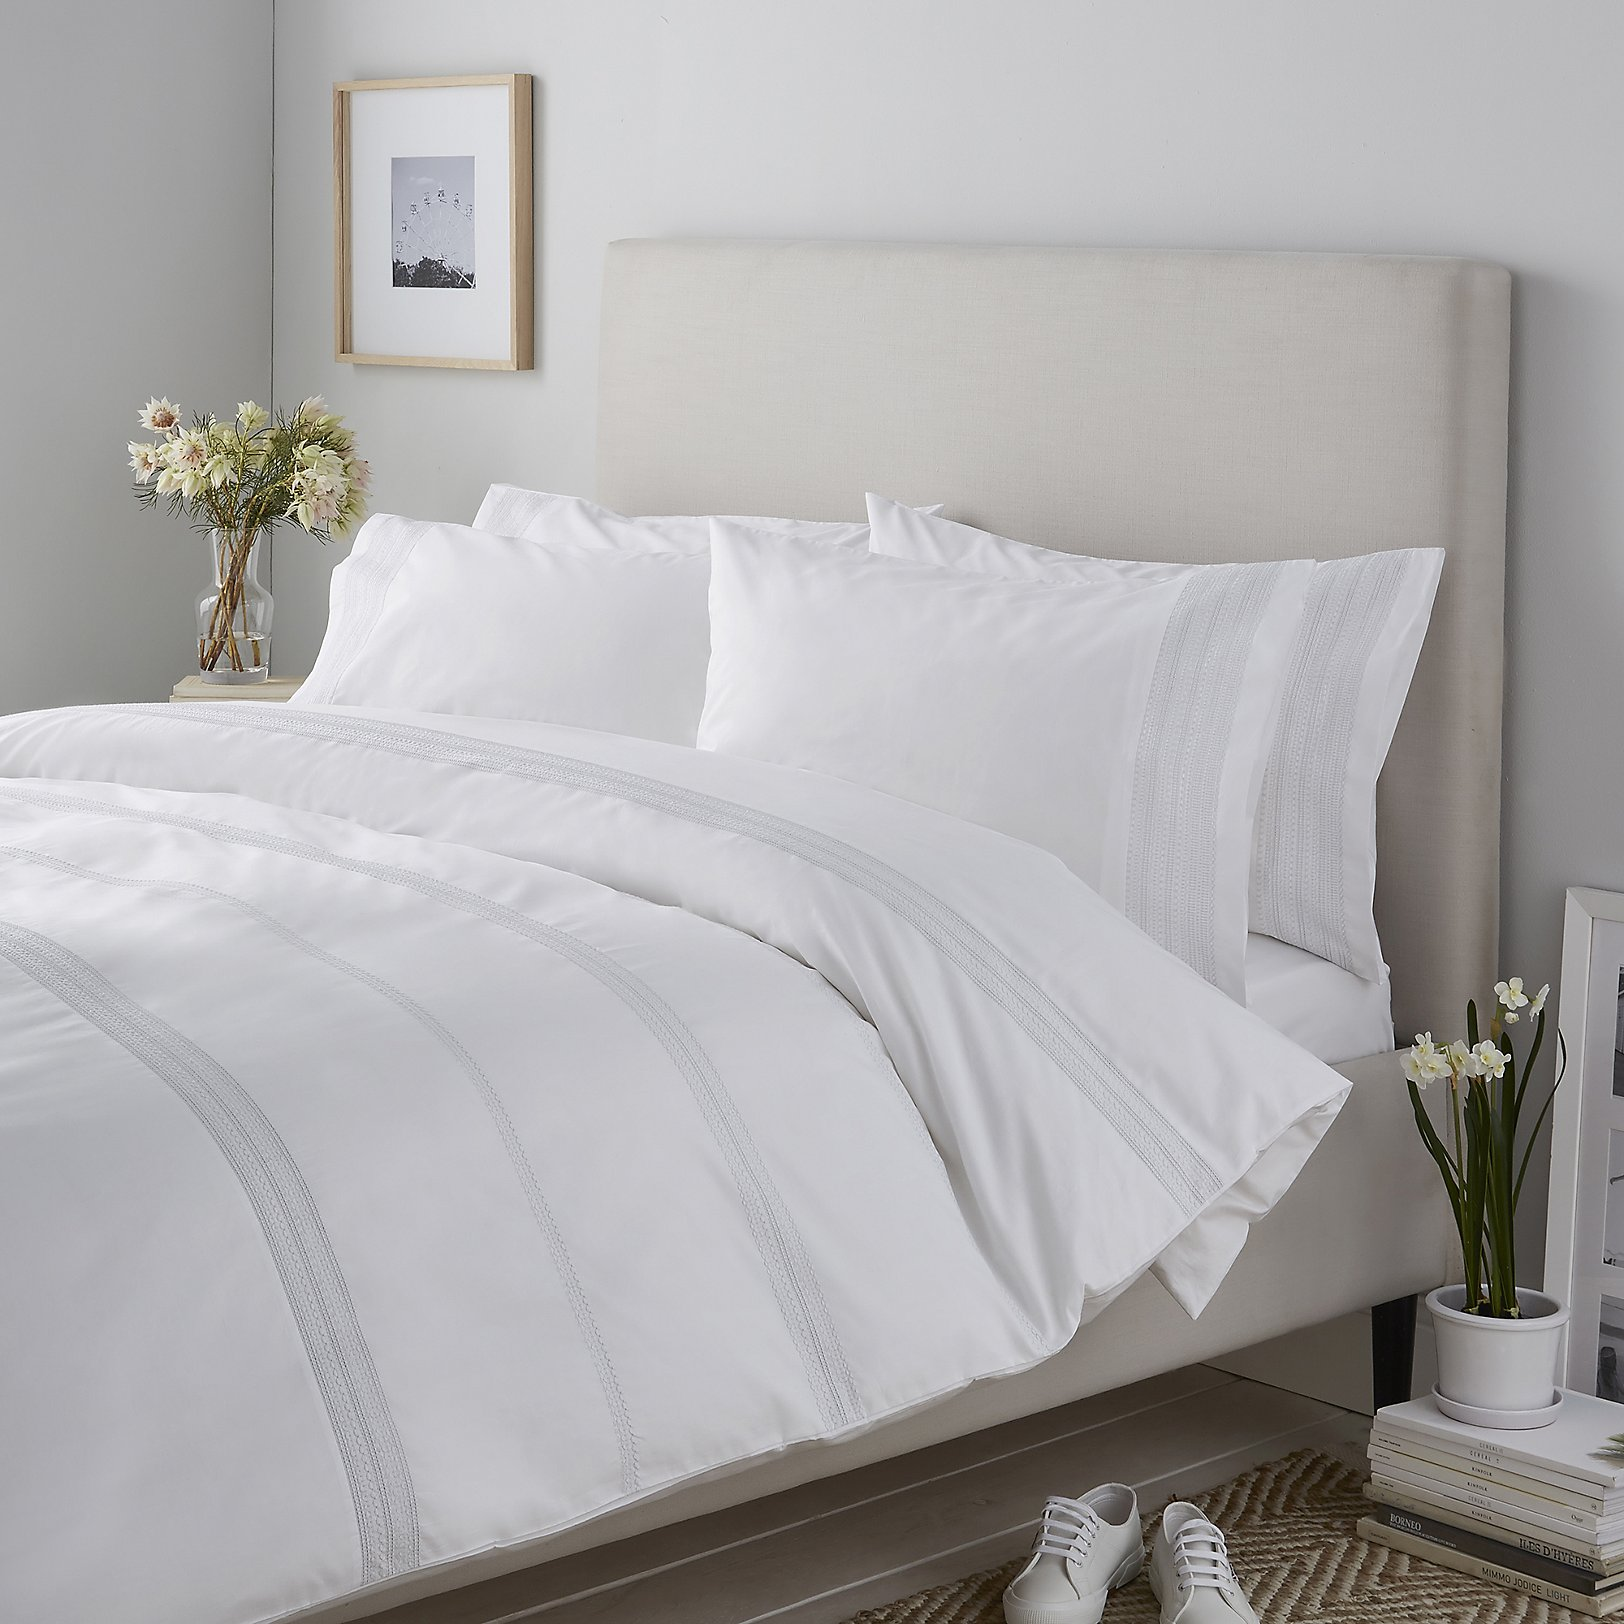 If you're on the hunt for a special crisp white bedding collection or duvet cover, look no more. We've found the absolute best with gorgeous embroidery both on the duvet cover and pillow case. We love this one because it is the perfect update to your classic white and bland bedding. The romantic and graceful touches are a huge plus!